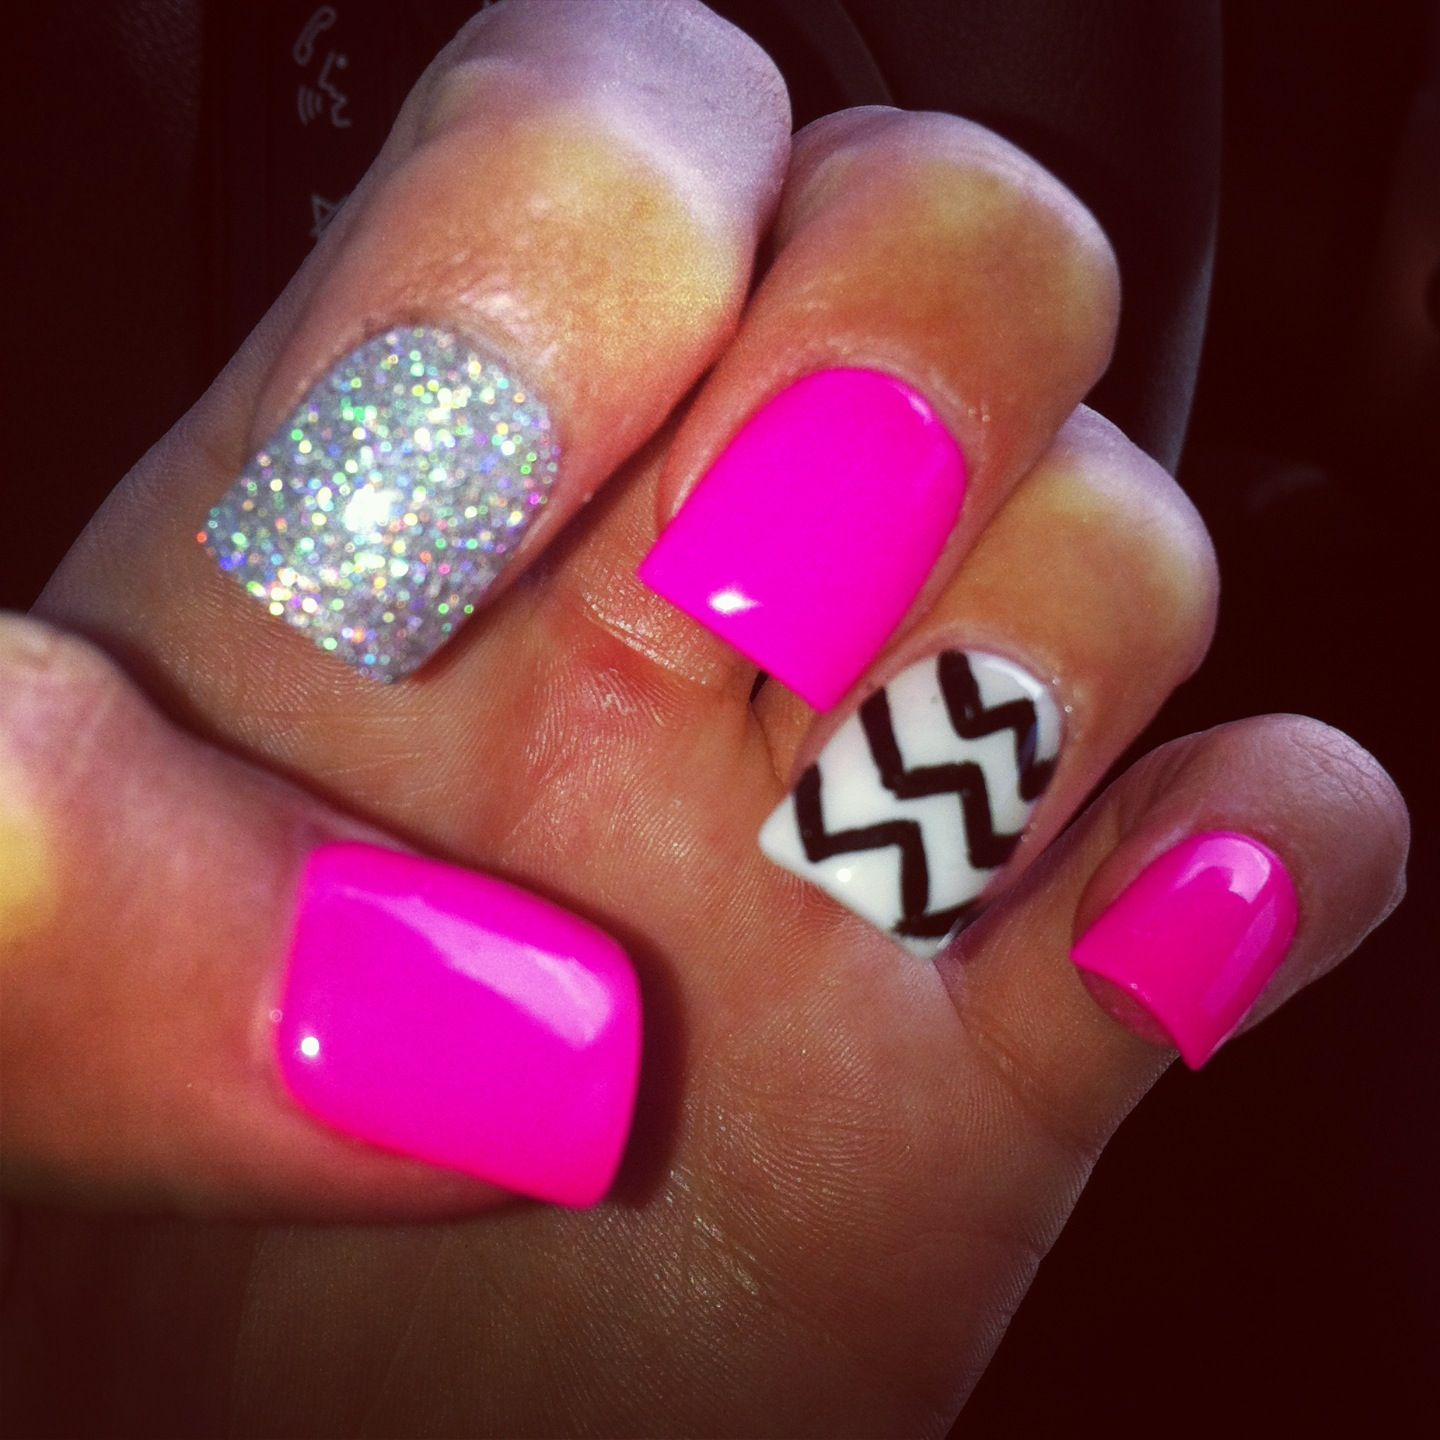 Pink glitter nails chevron design | Nails with cross design ...